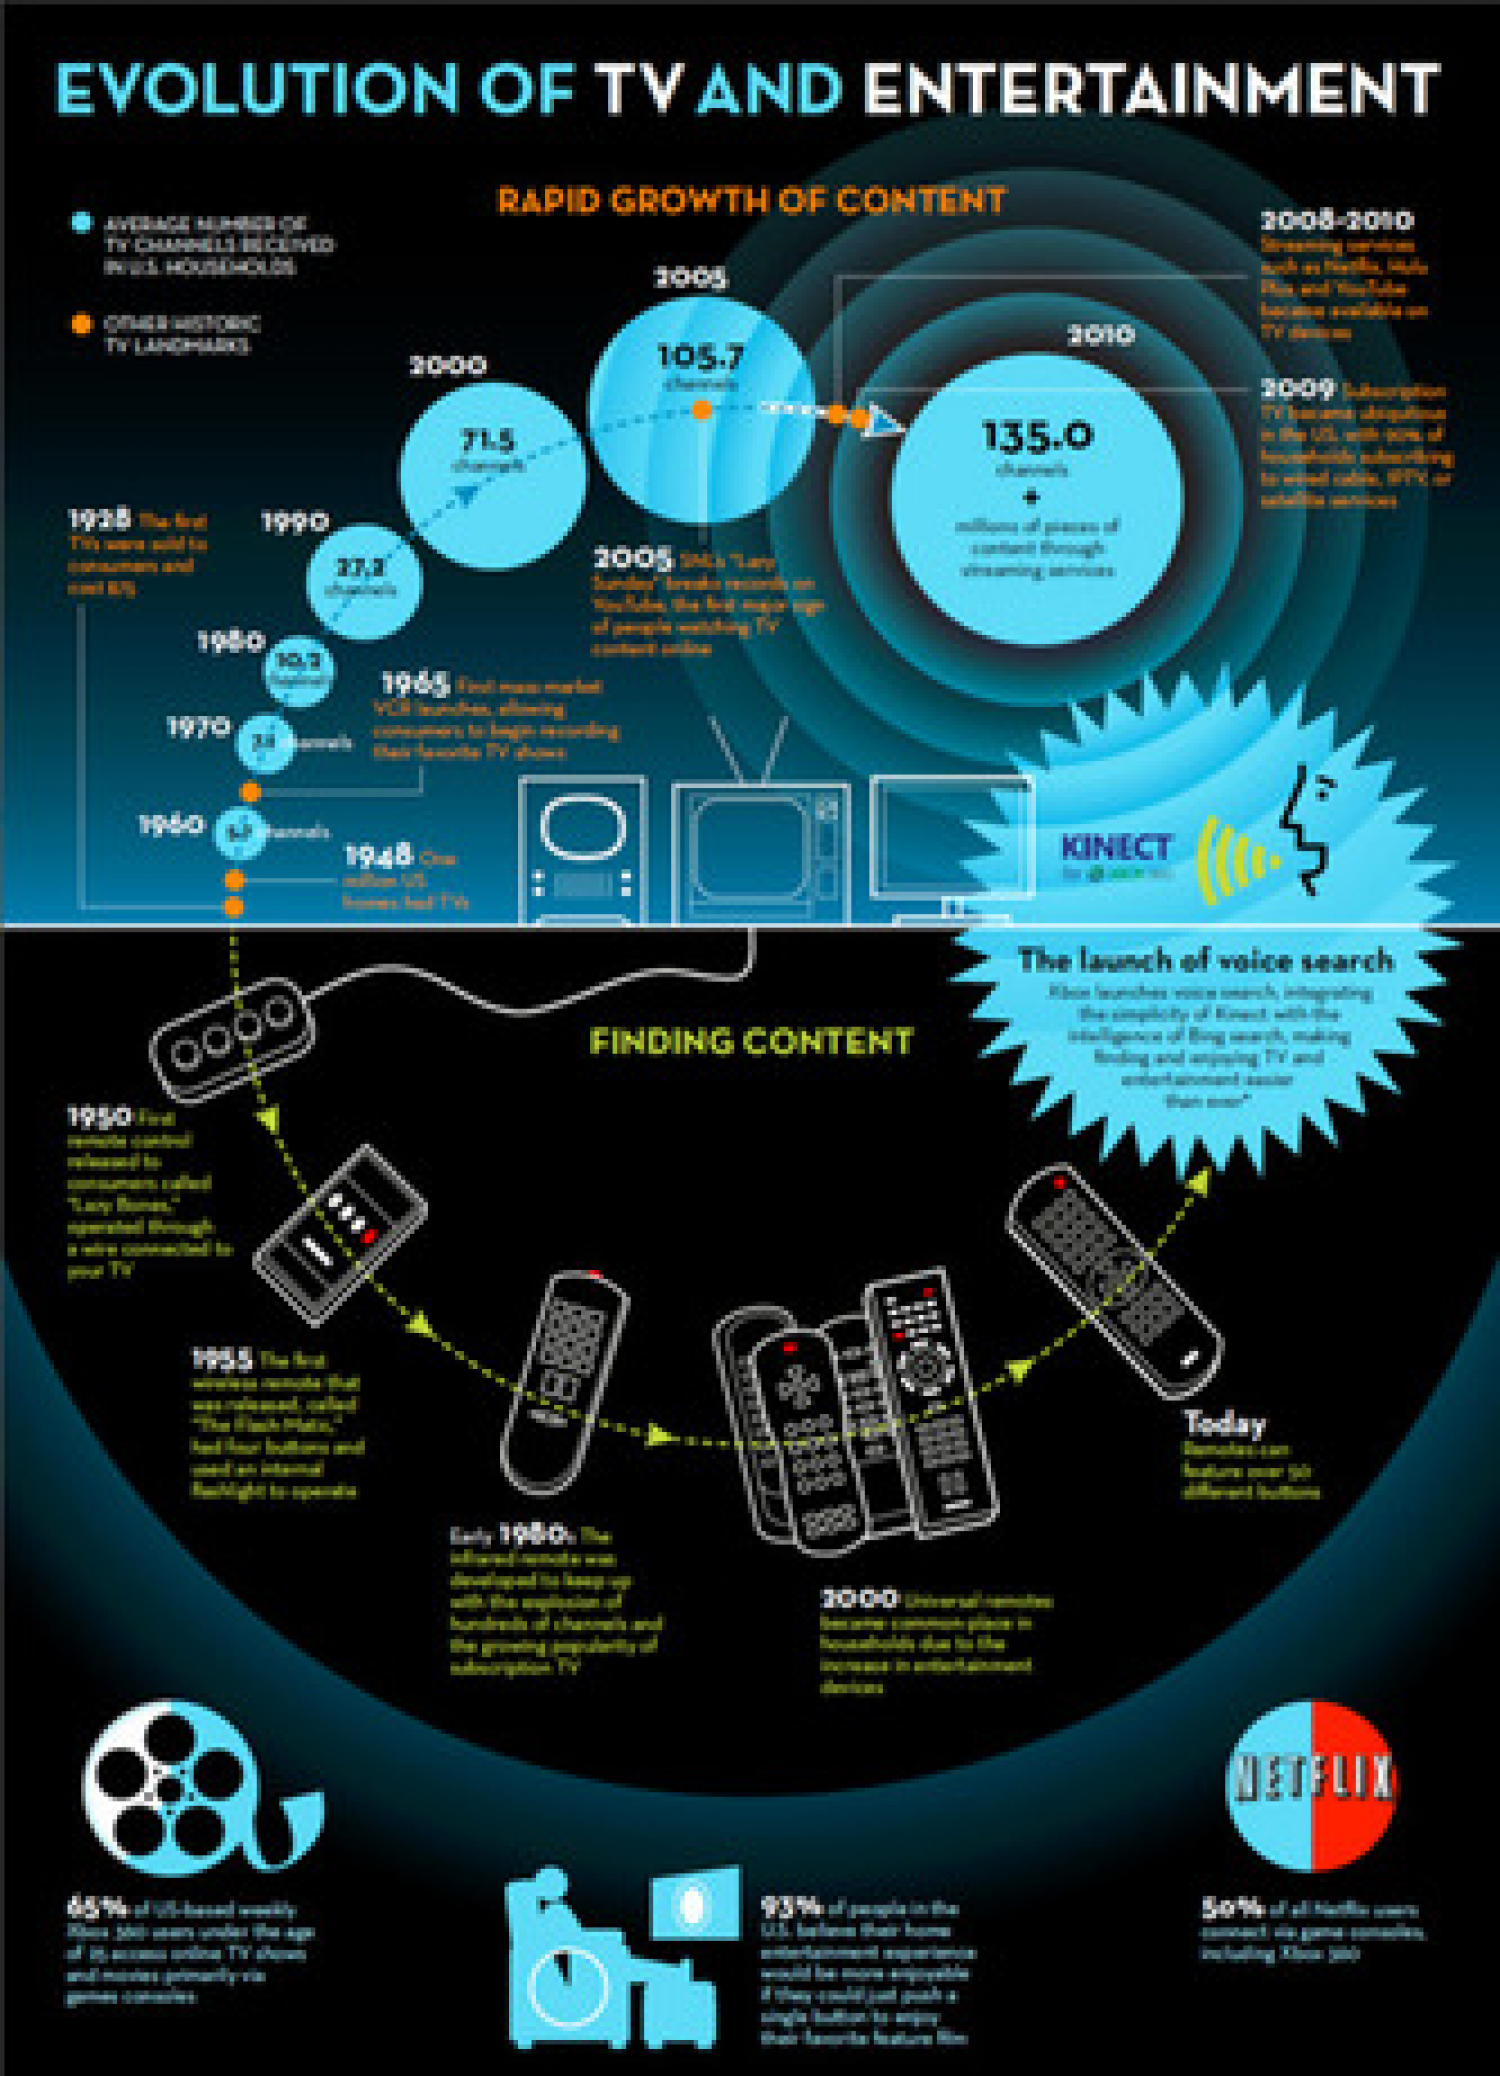 Evolution of TV and Entertainment Infographic